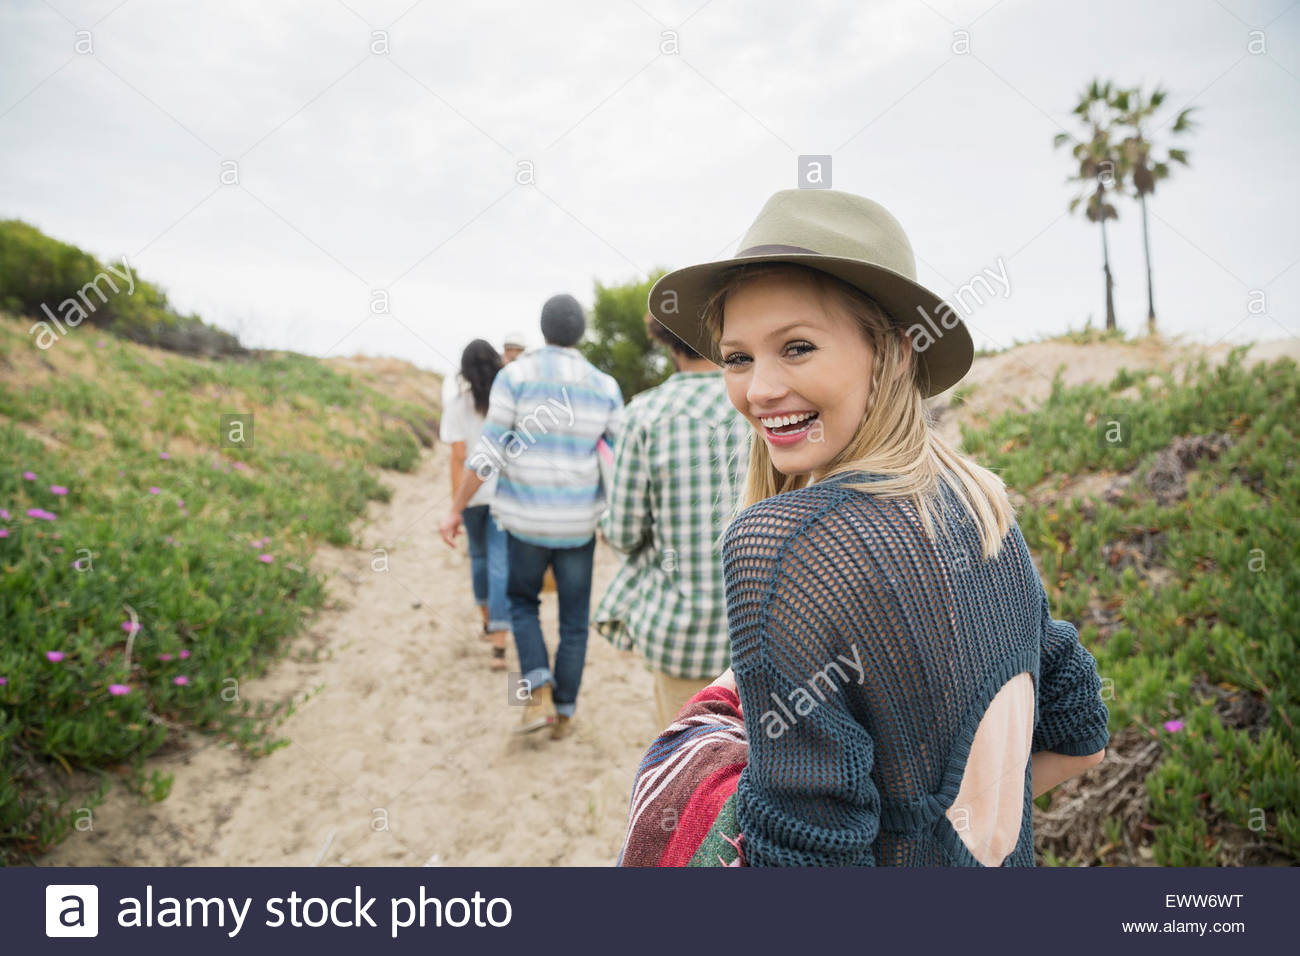 Portrait smiling young woman walking on beach path - Stock Image